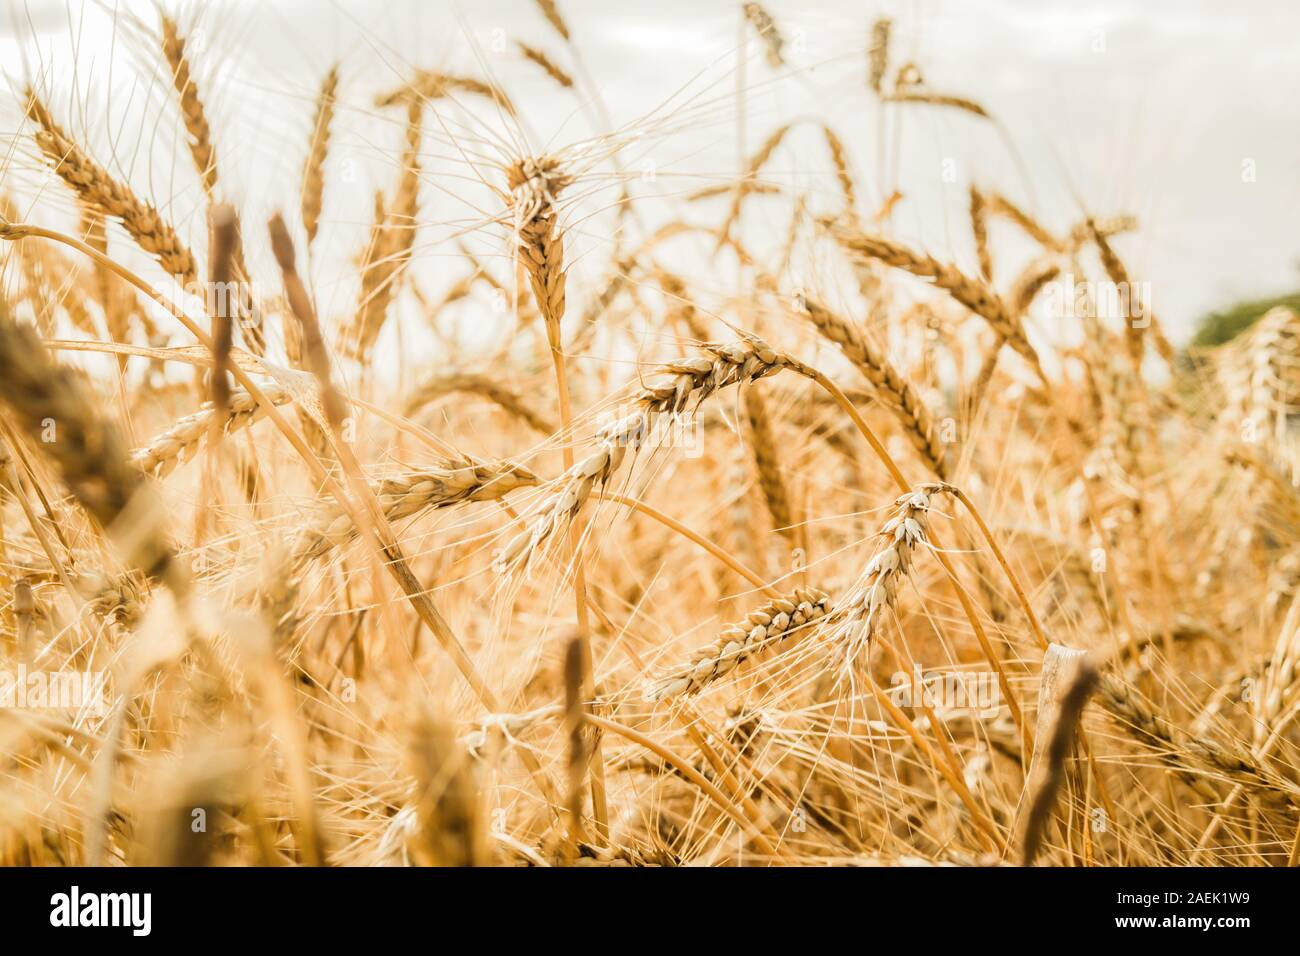 Spikelets Of Wheat Close Up On A Background Of A Golden